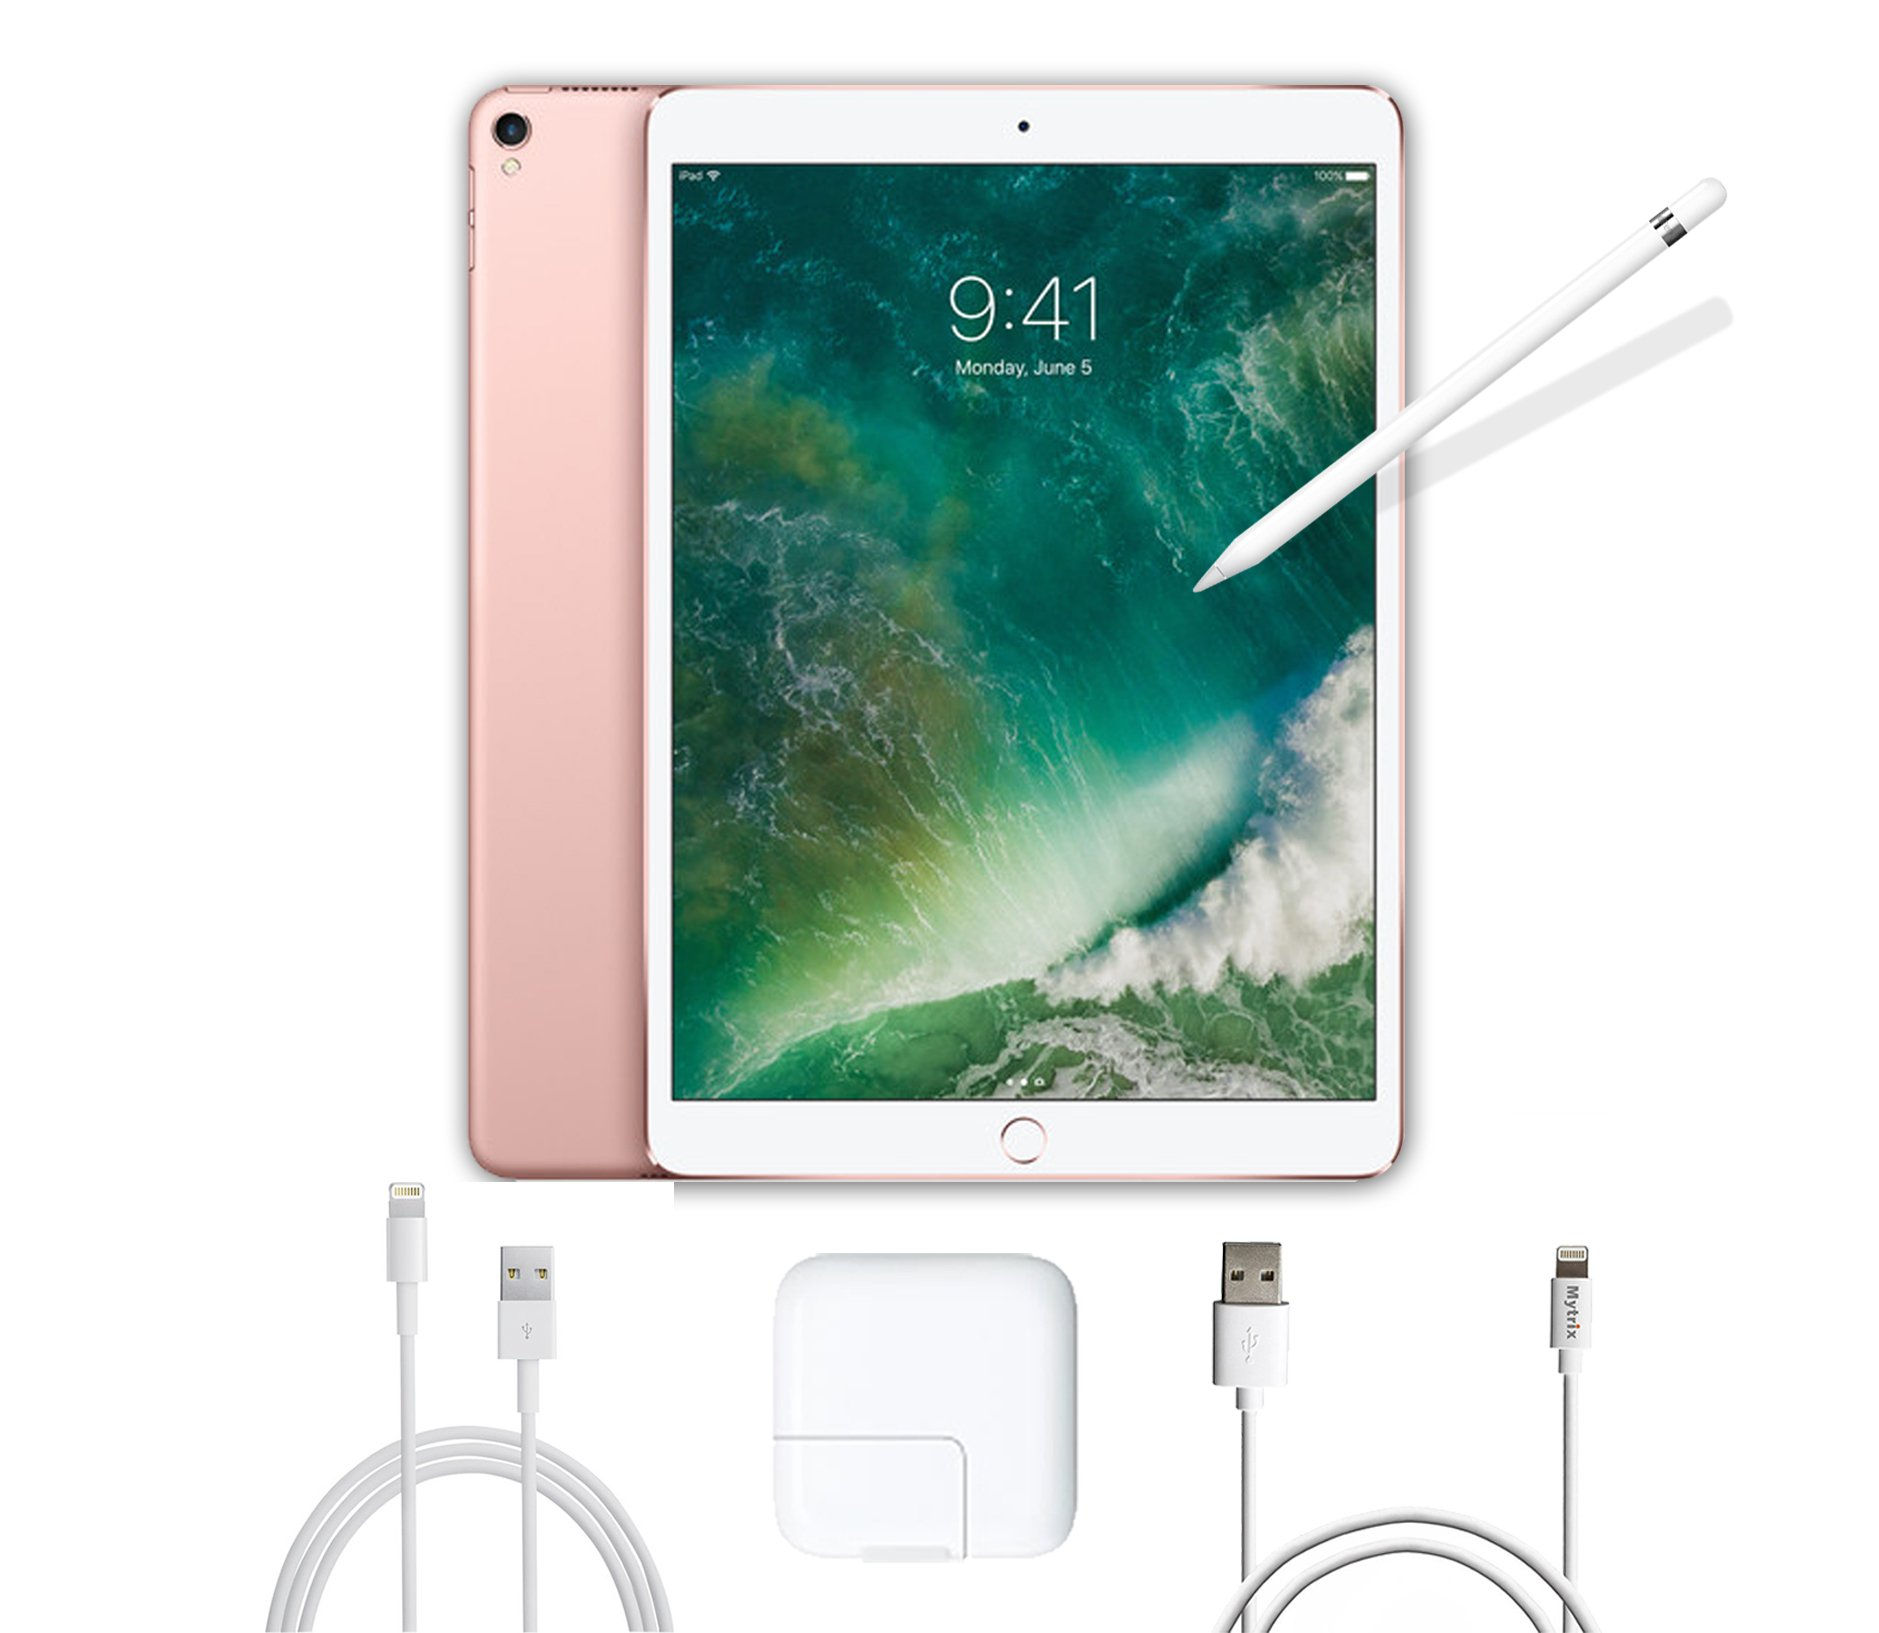 2017 New IPad Pro Bundle (3 Items): Apple 10.5 inch iPad Pro with Wi-Fi, Apple Pencil and Mytrix USB Apple Lightning Cable (512, Rose Gold) by Apple&ShopMall